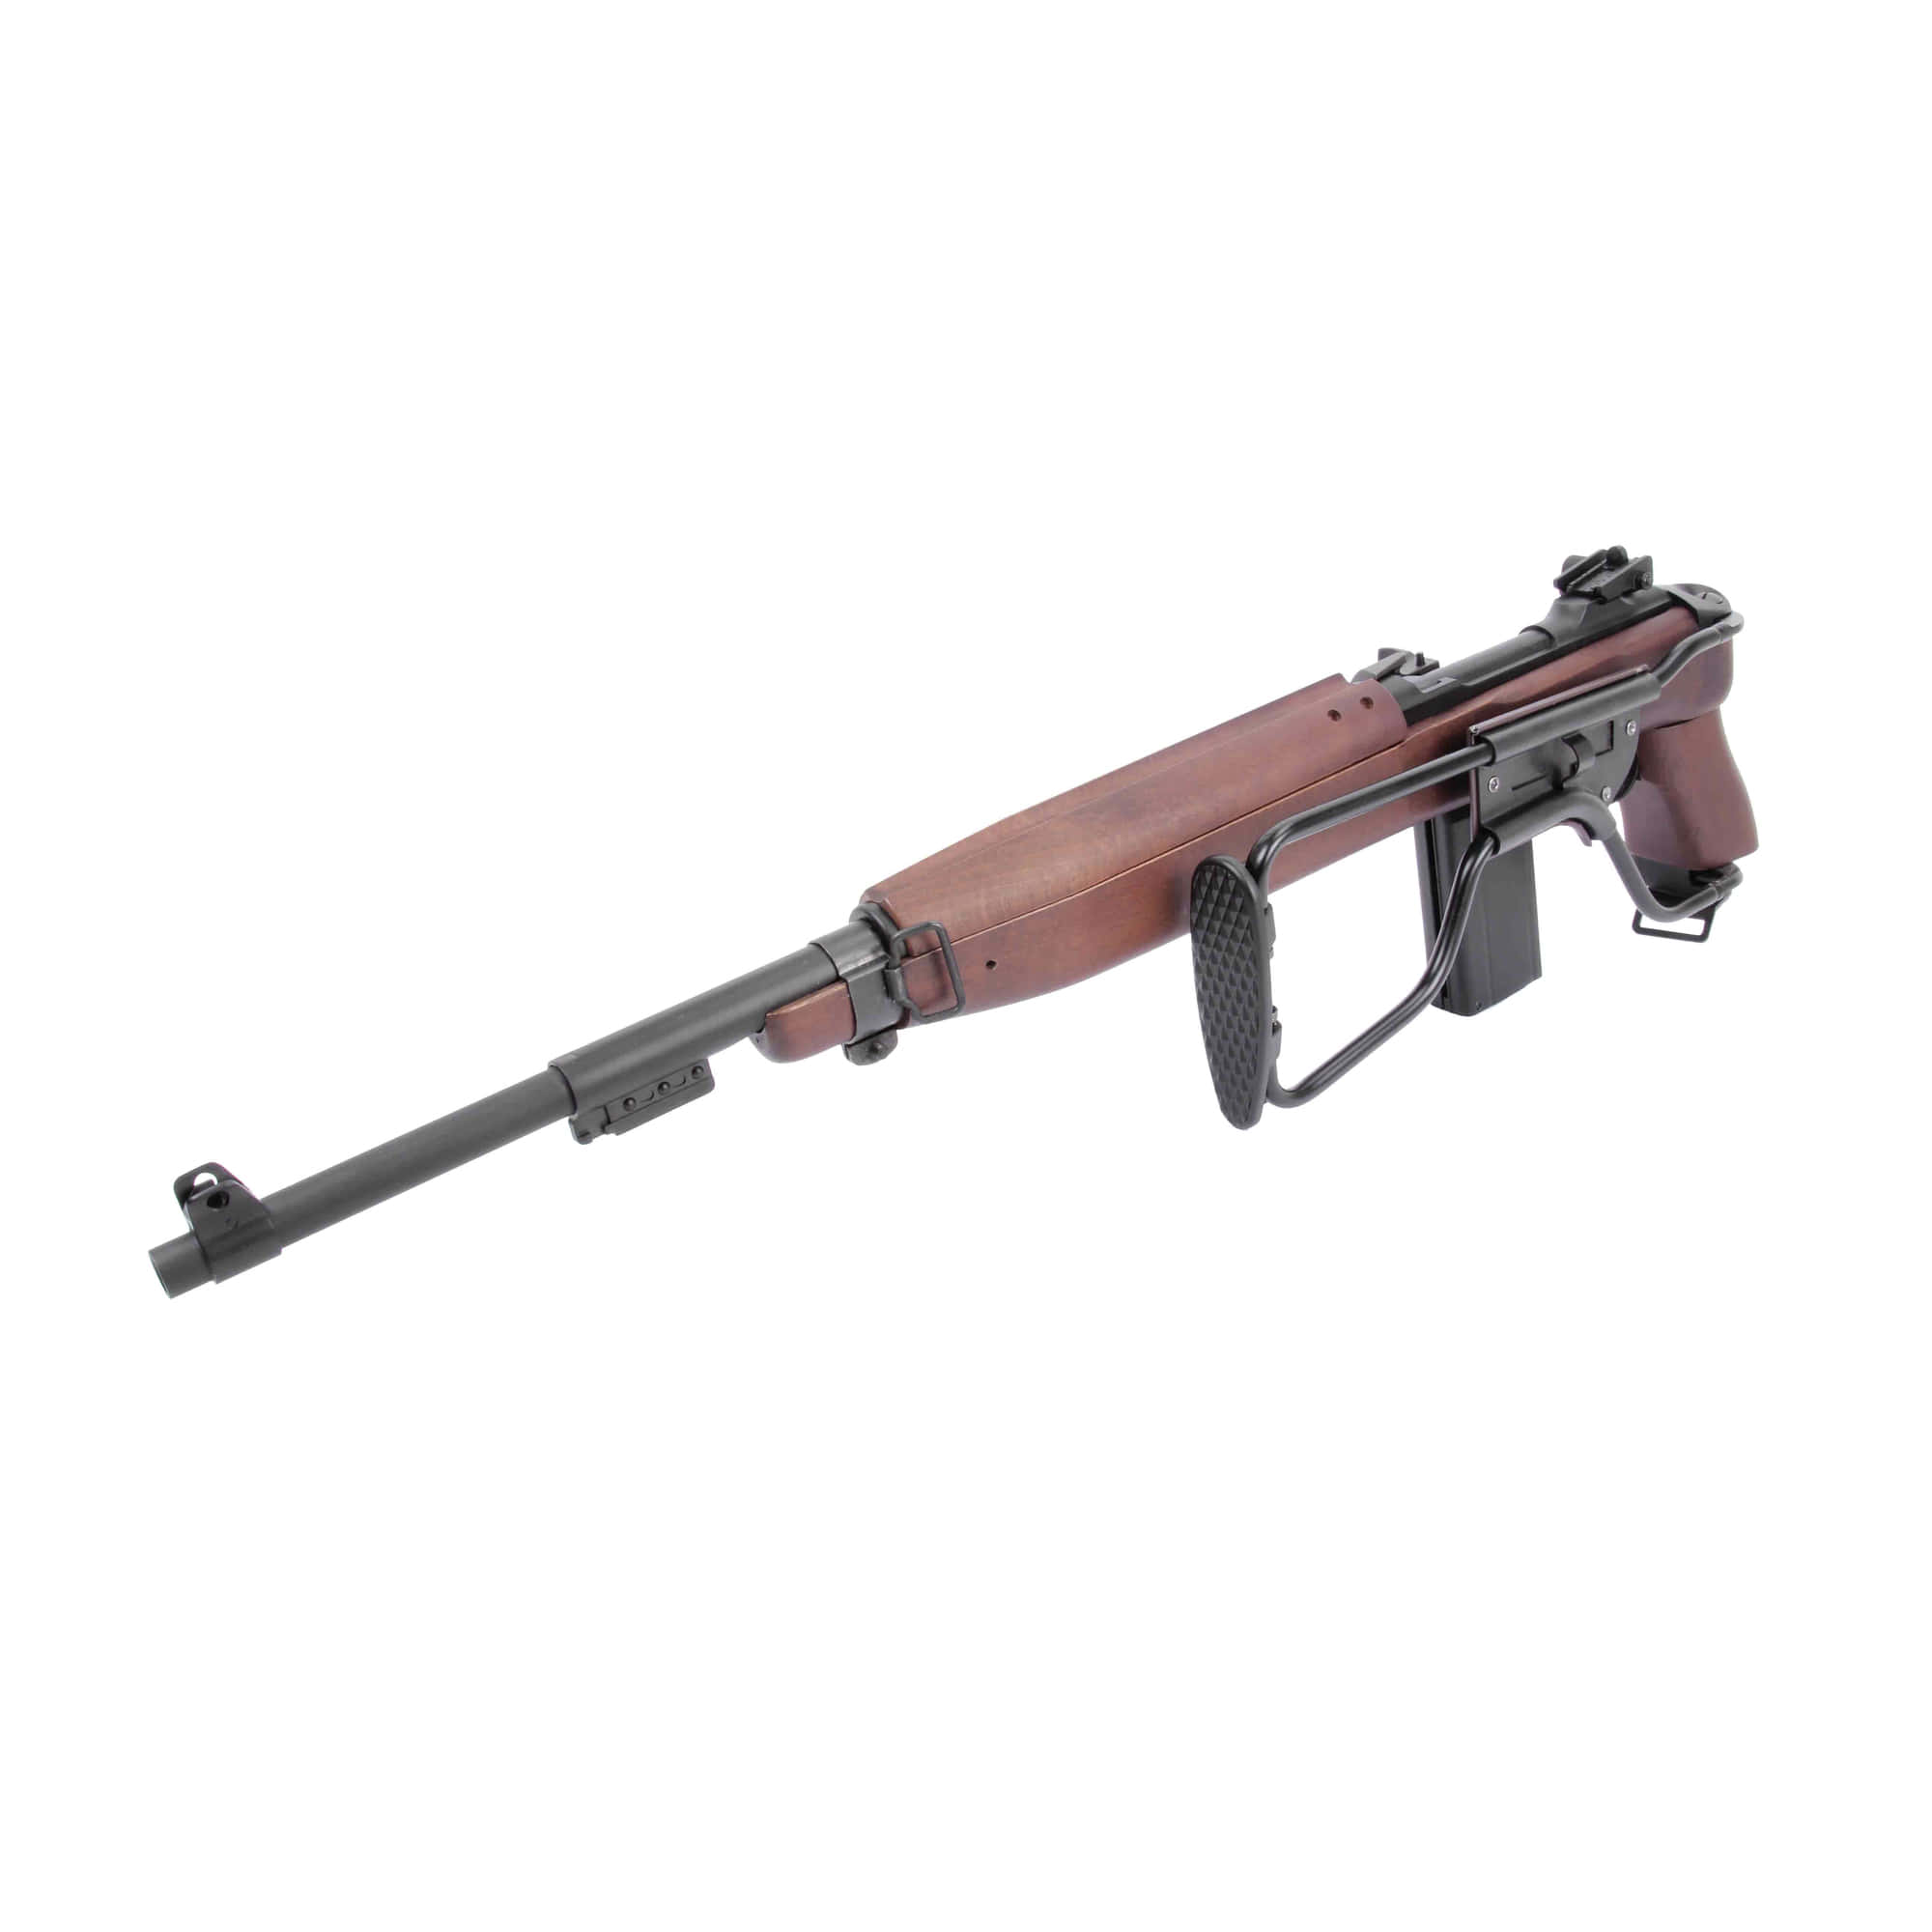 LE6030-6-Réplique M1A1 Paratrooper Co2 - KING ARMS - LE6030C